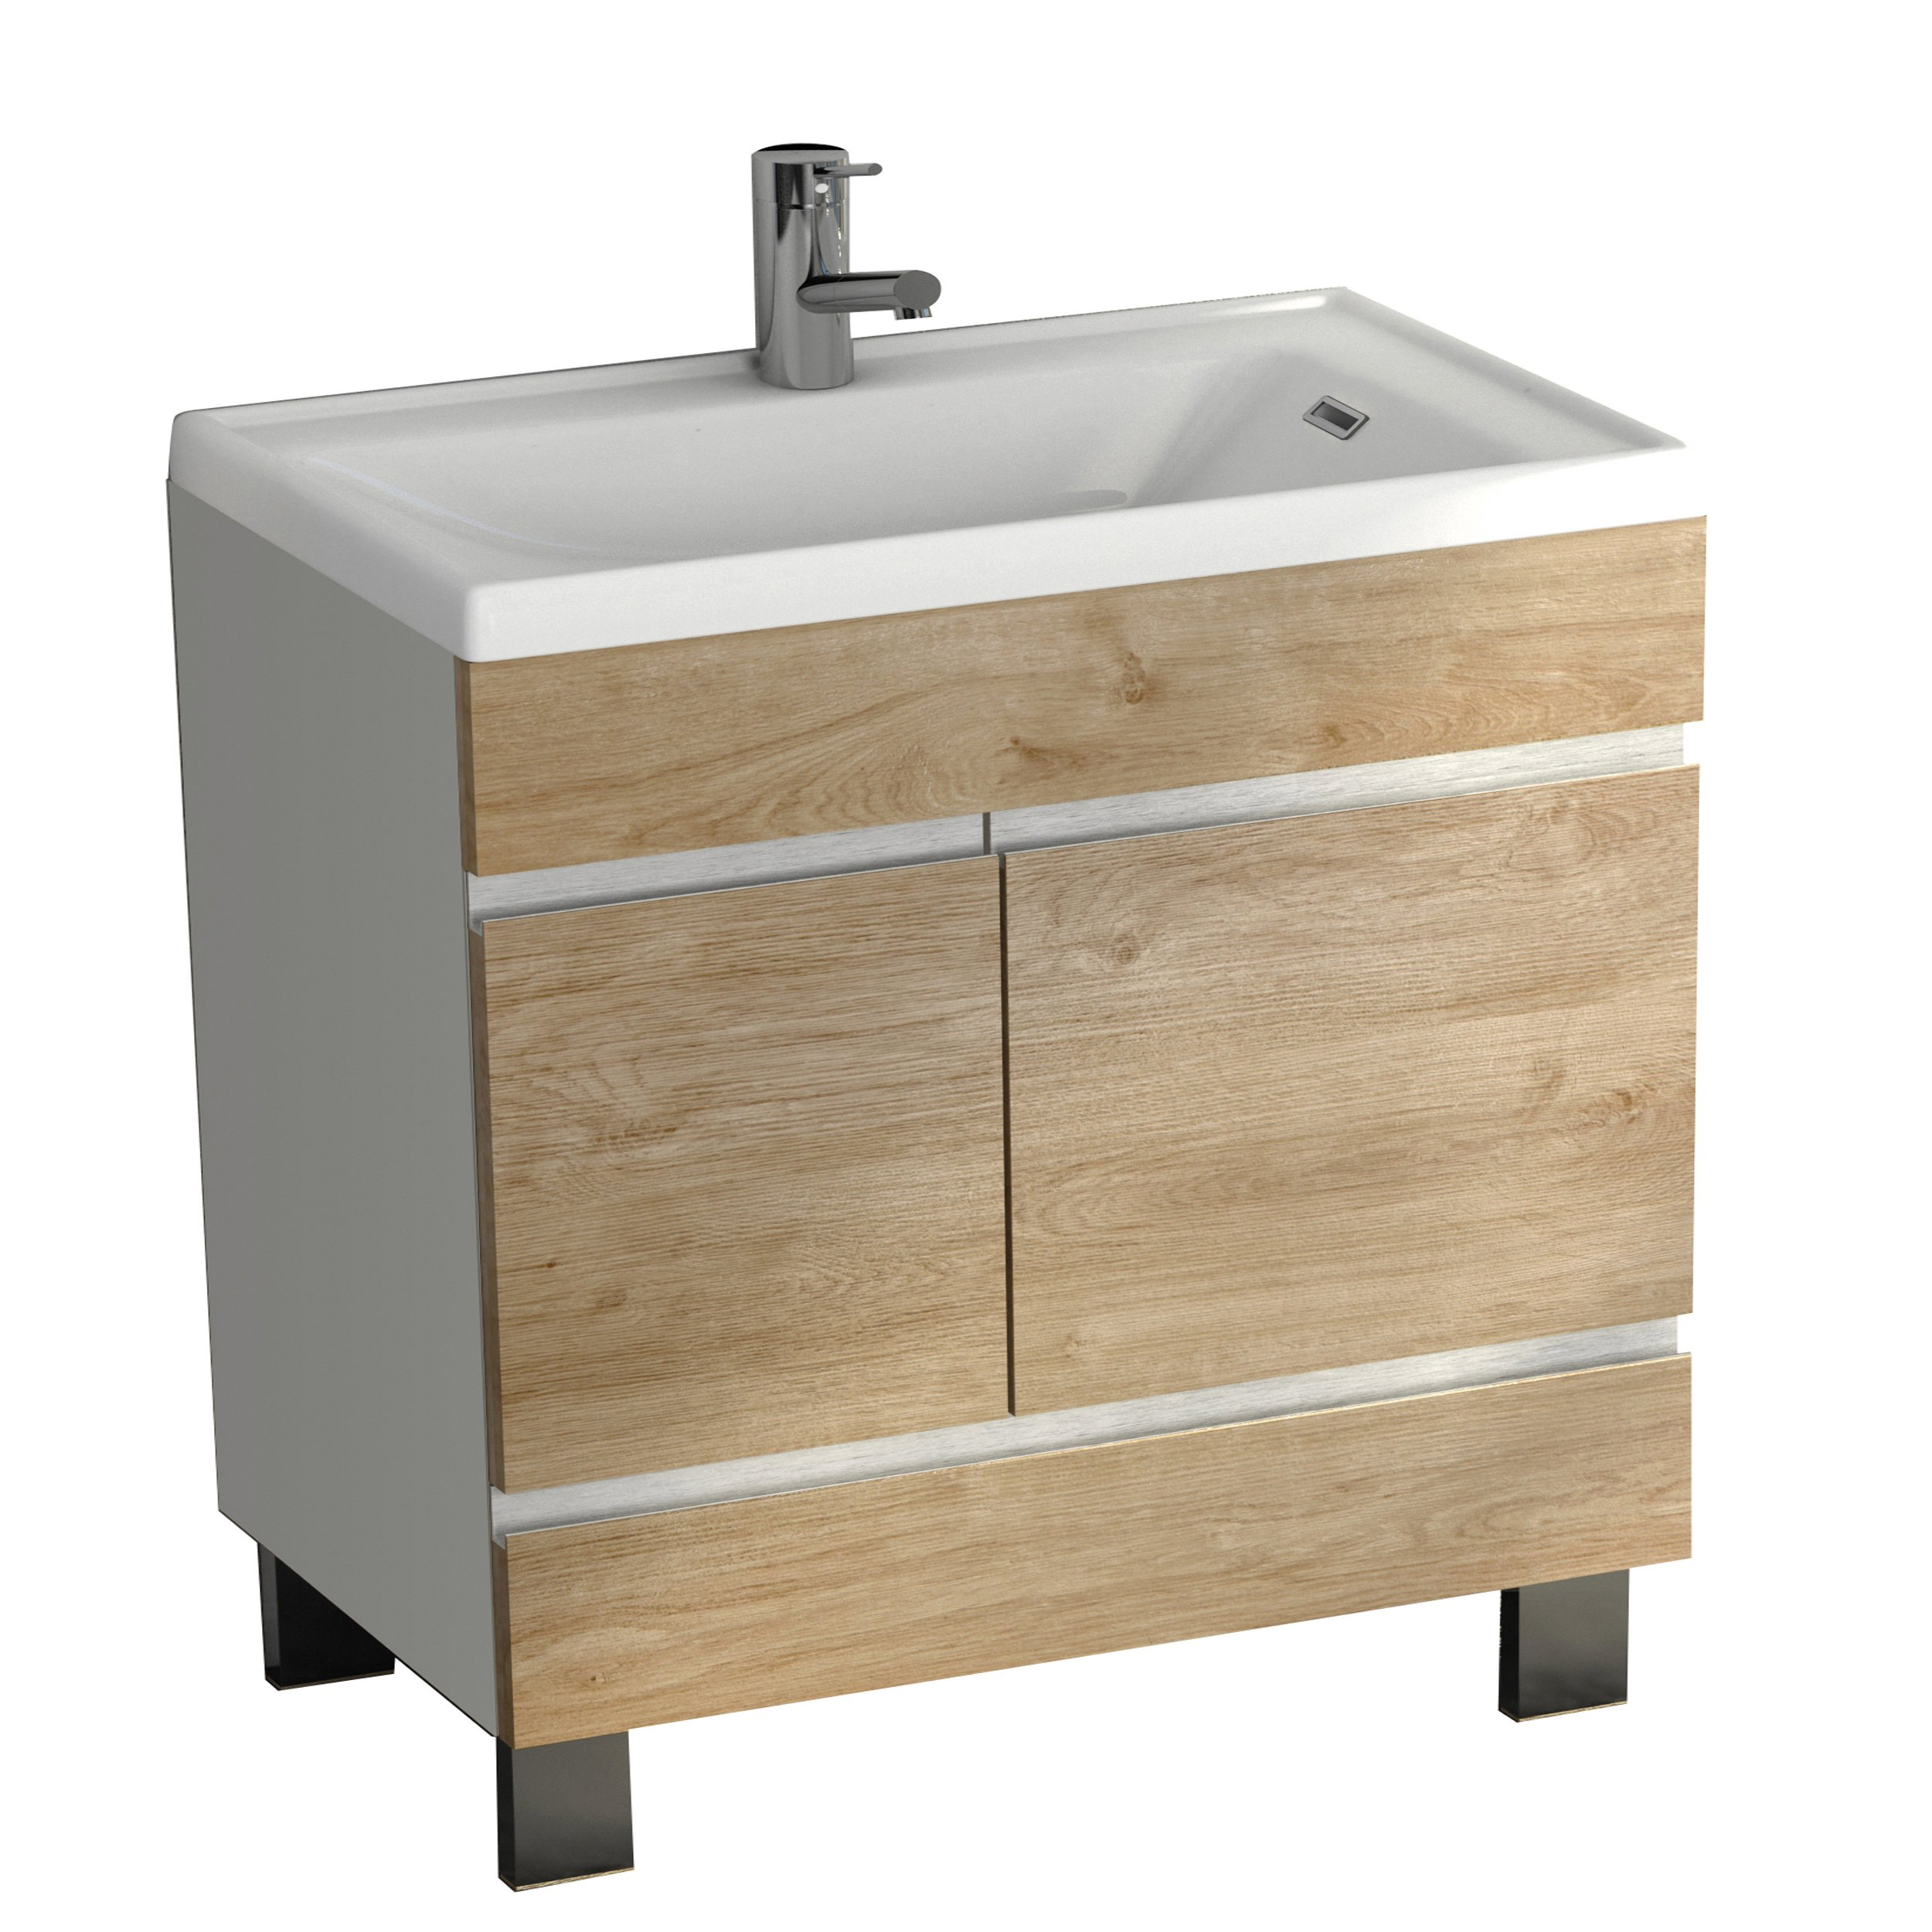 "Eviva EVVN540-24WH/OAK Petite Plus 24"" White/Oak Vanity with Porcelain Sink"